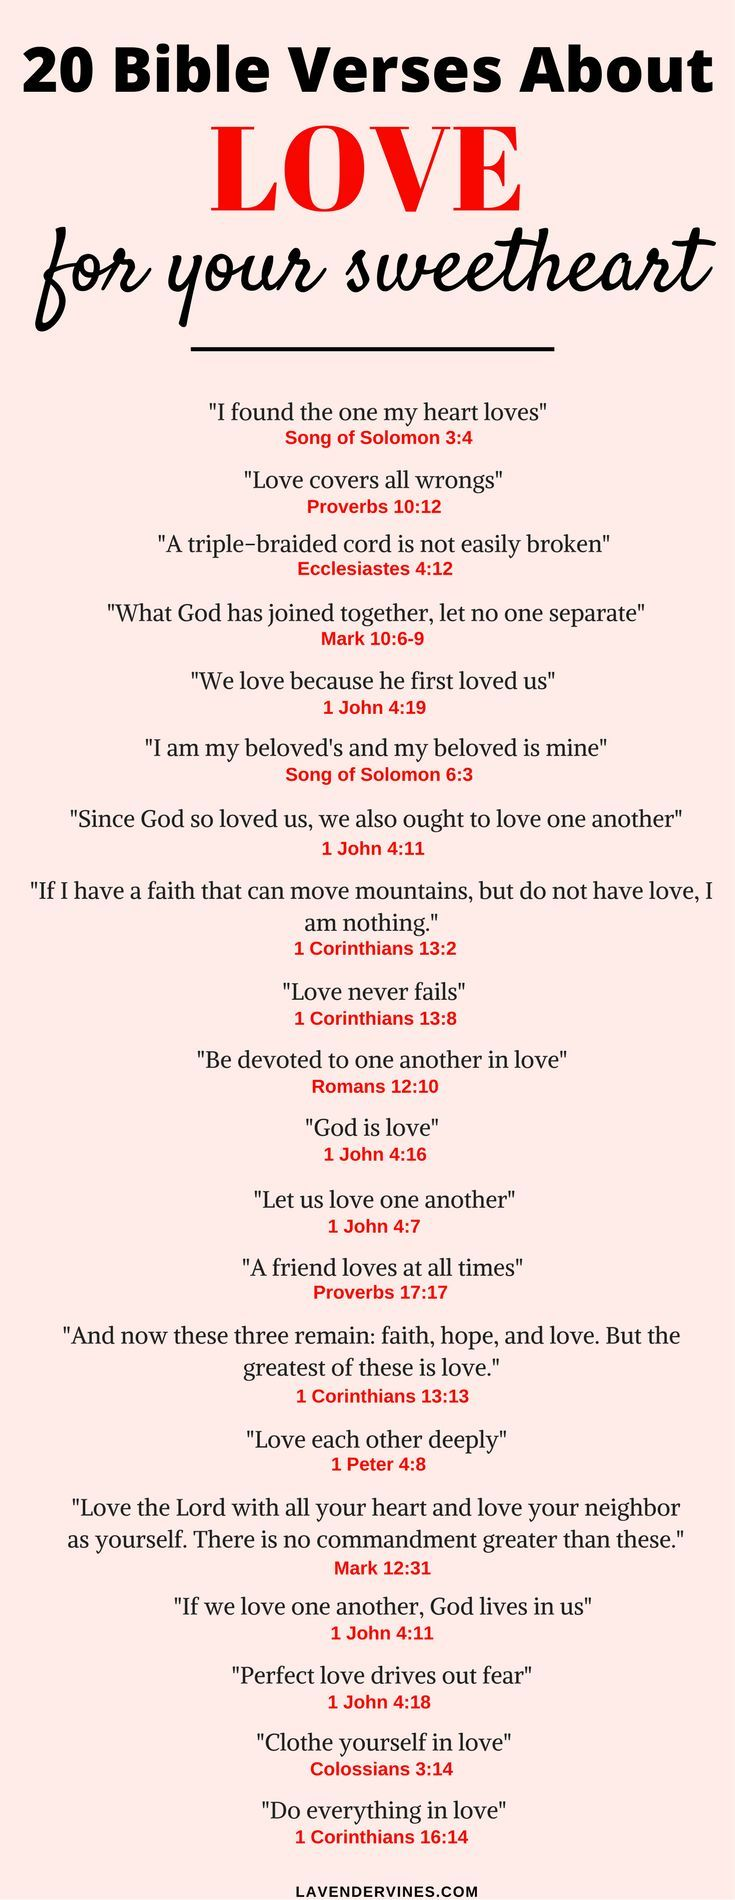 Love in the bible, Bible Verses about love, bible verses about relationships, bible verses about marriage, Love of God, Christian dating, bible verses about couples #christian #christianity #pray #praying #prayforus #prayerrquests #bible #advice #God #christianblog #scriptures #blessings #Christ #inspirational #love #relationships #relationshipgoals #bibleverses #marriage #couples #valentinesday #faith #praisedance #truth #disciple